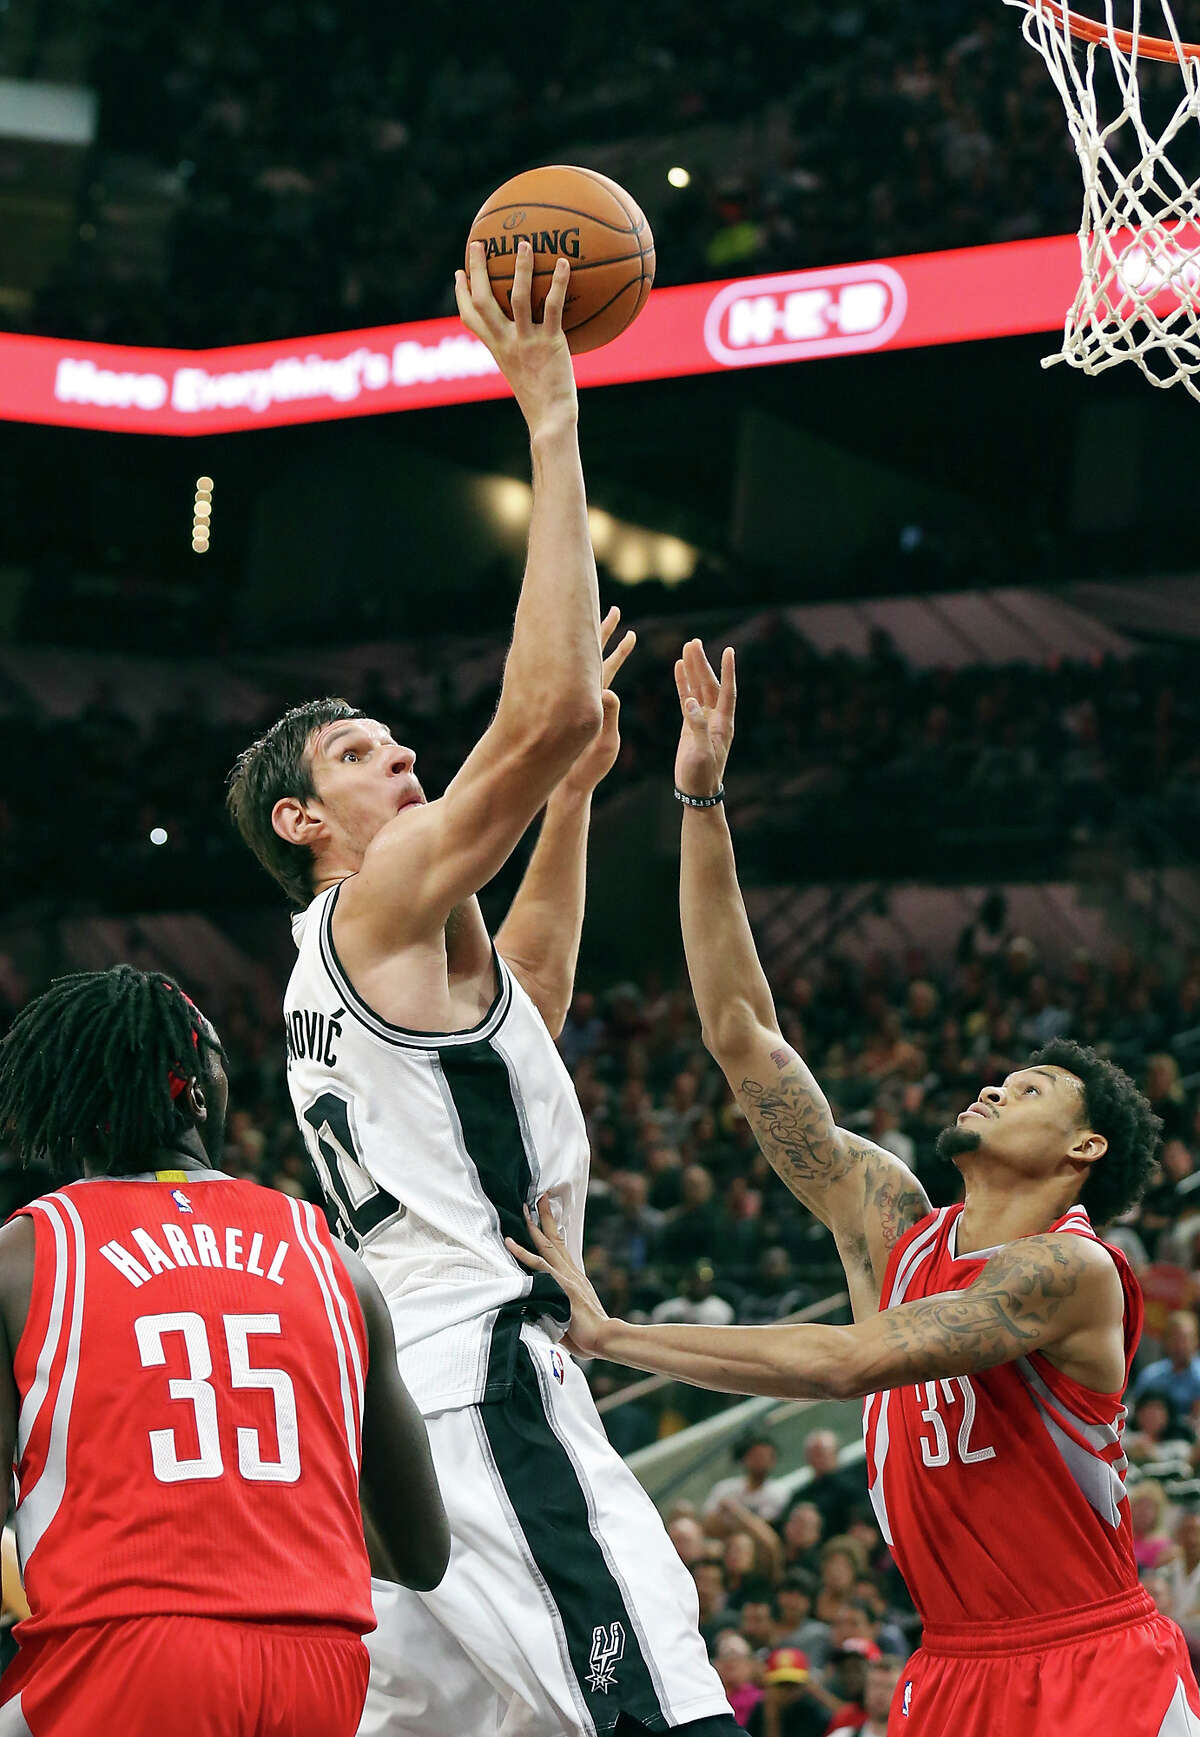 San Antonio Spurs' Boban Marjanovic shoots between Houston Rockets' Montrezl Harrell (left) and K.J. McDaniels during second half action Friday Oct. 23, 2015 at the AT&T Center. The Spurs won 111-86.